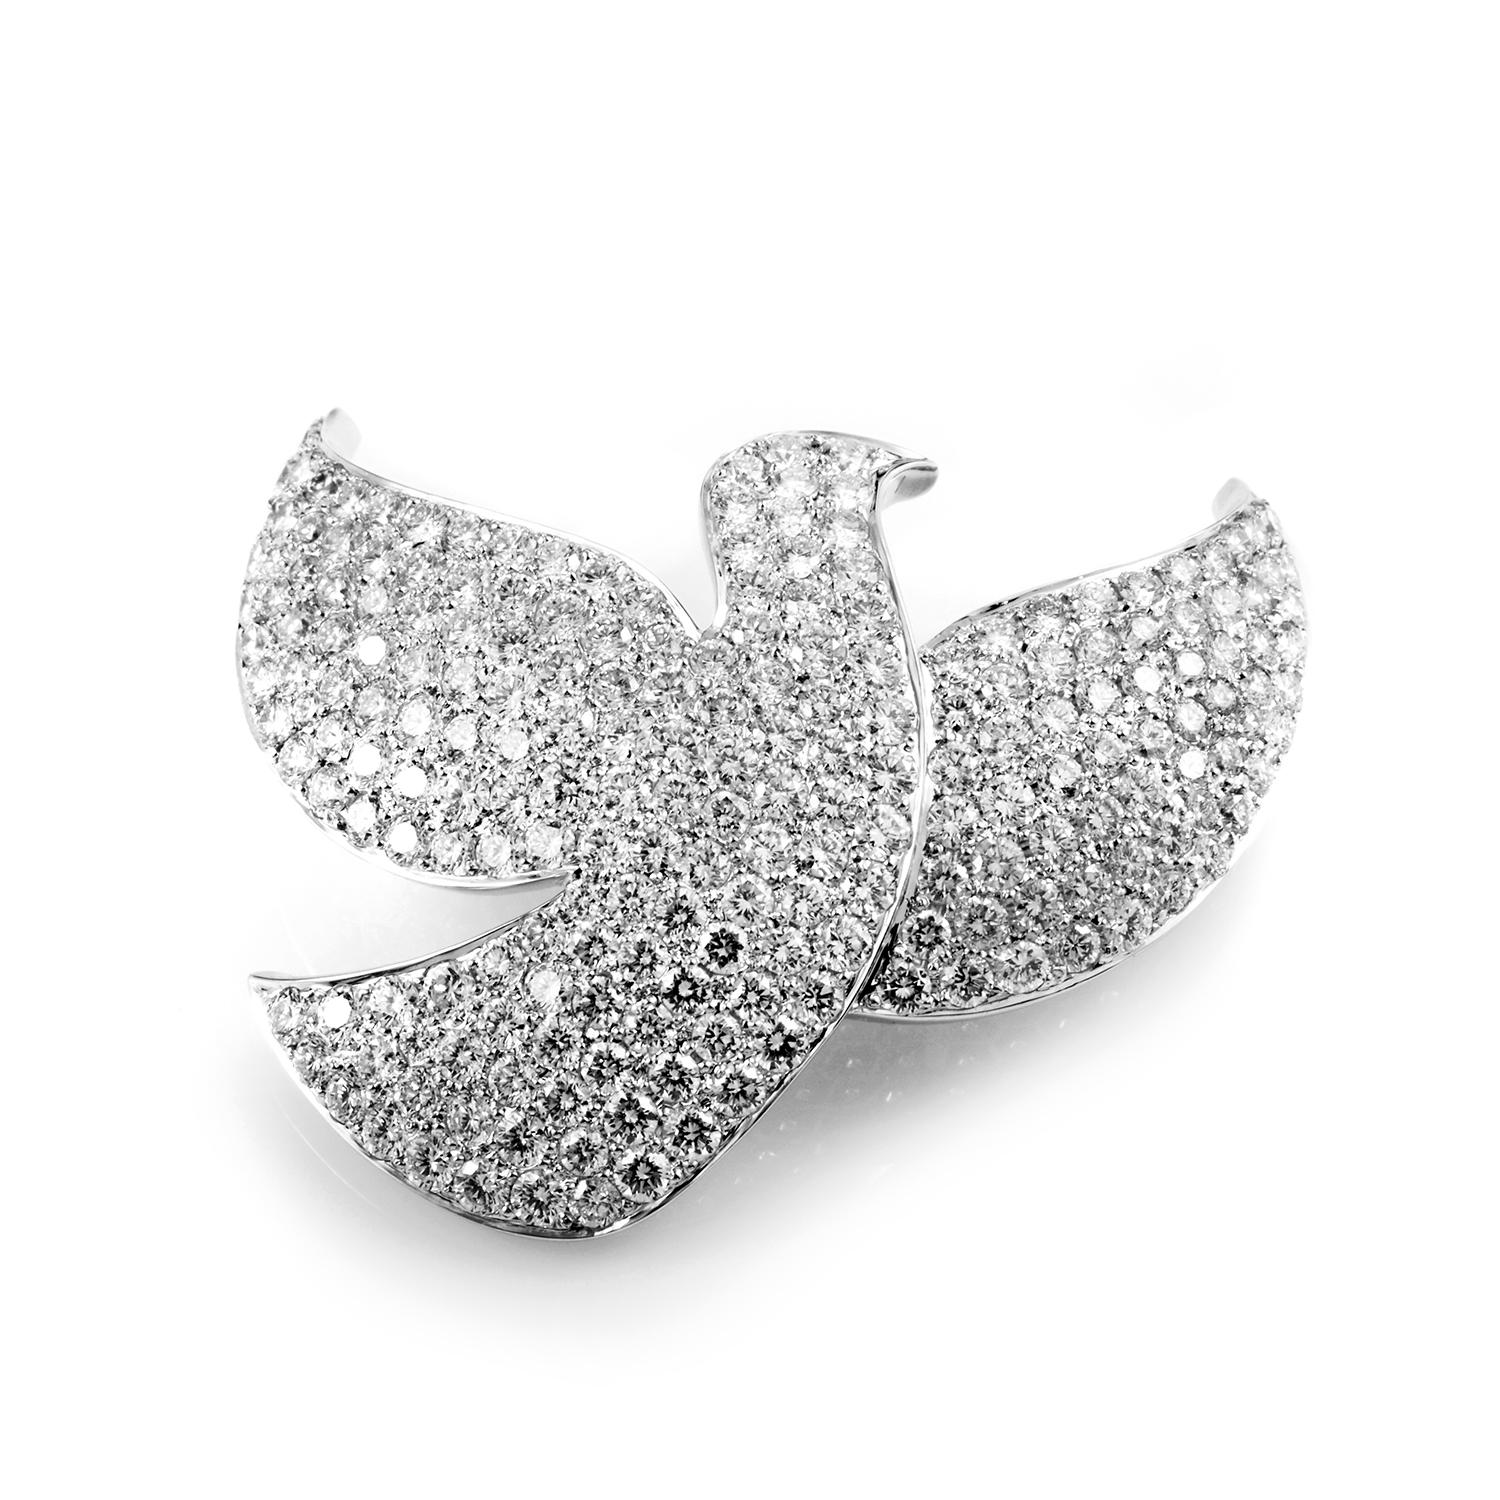 Cartier Dove of Peace 18K White Gold Diamond Pave Brooch